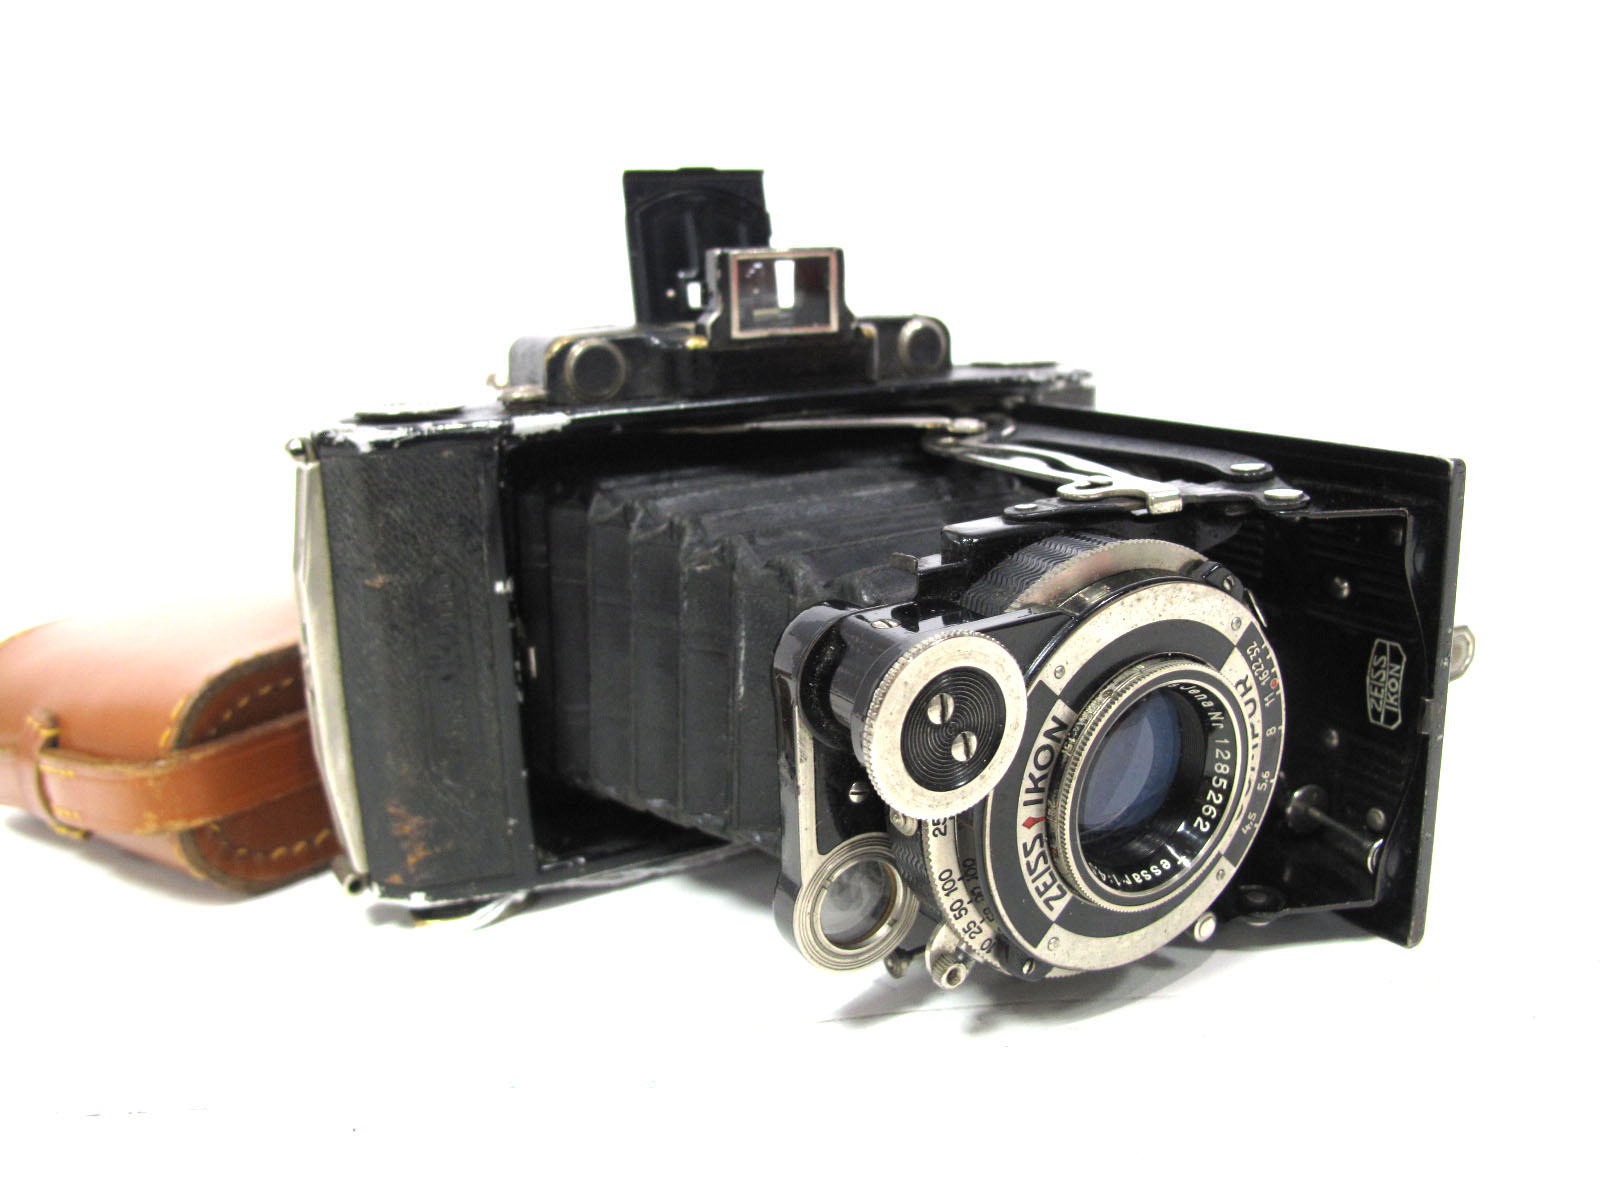 Zeiss Ikon Super Ikonta, in brown leather case.